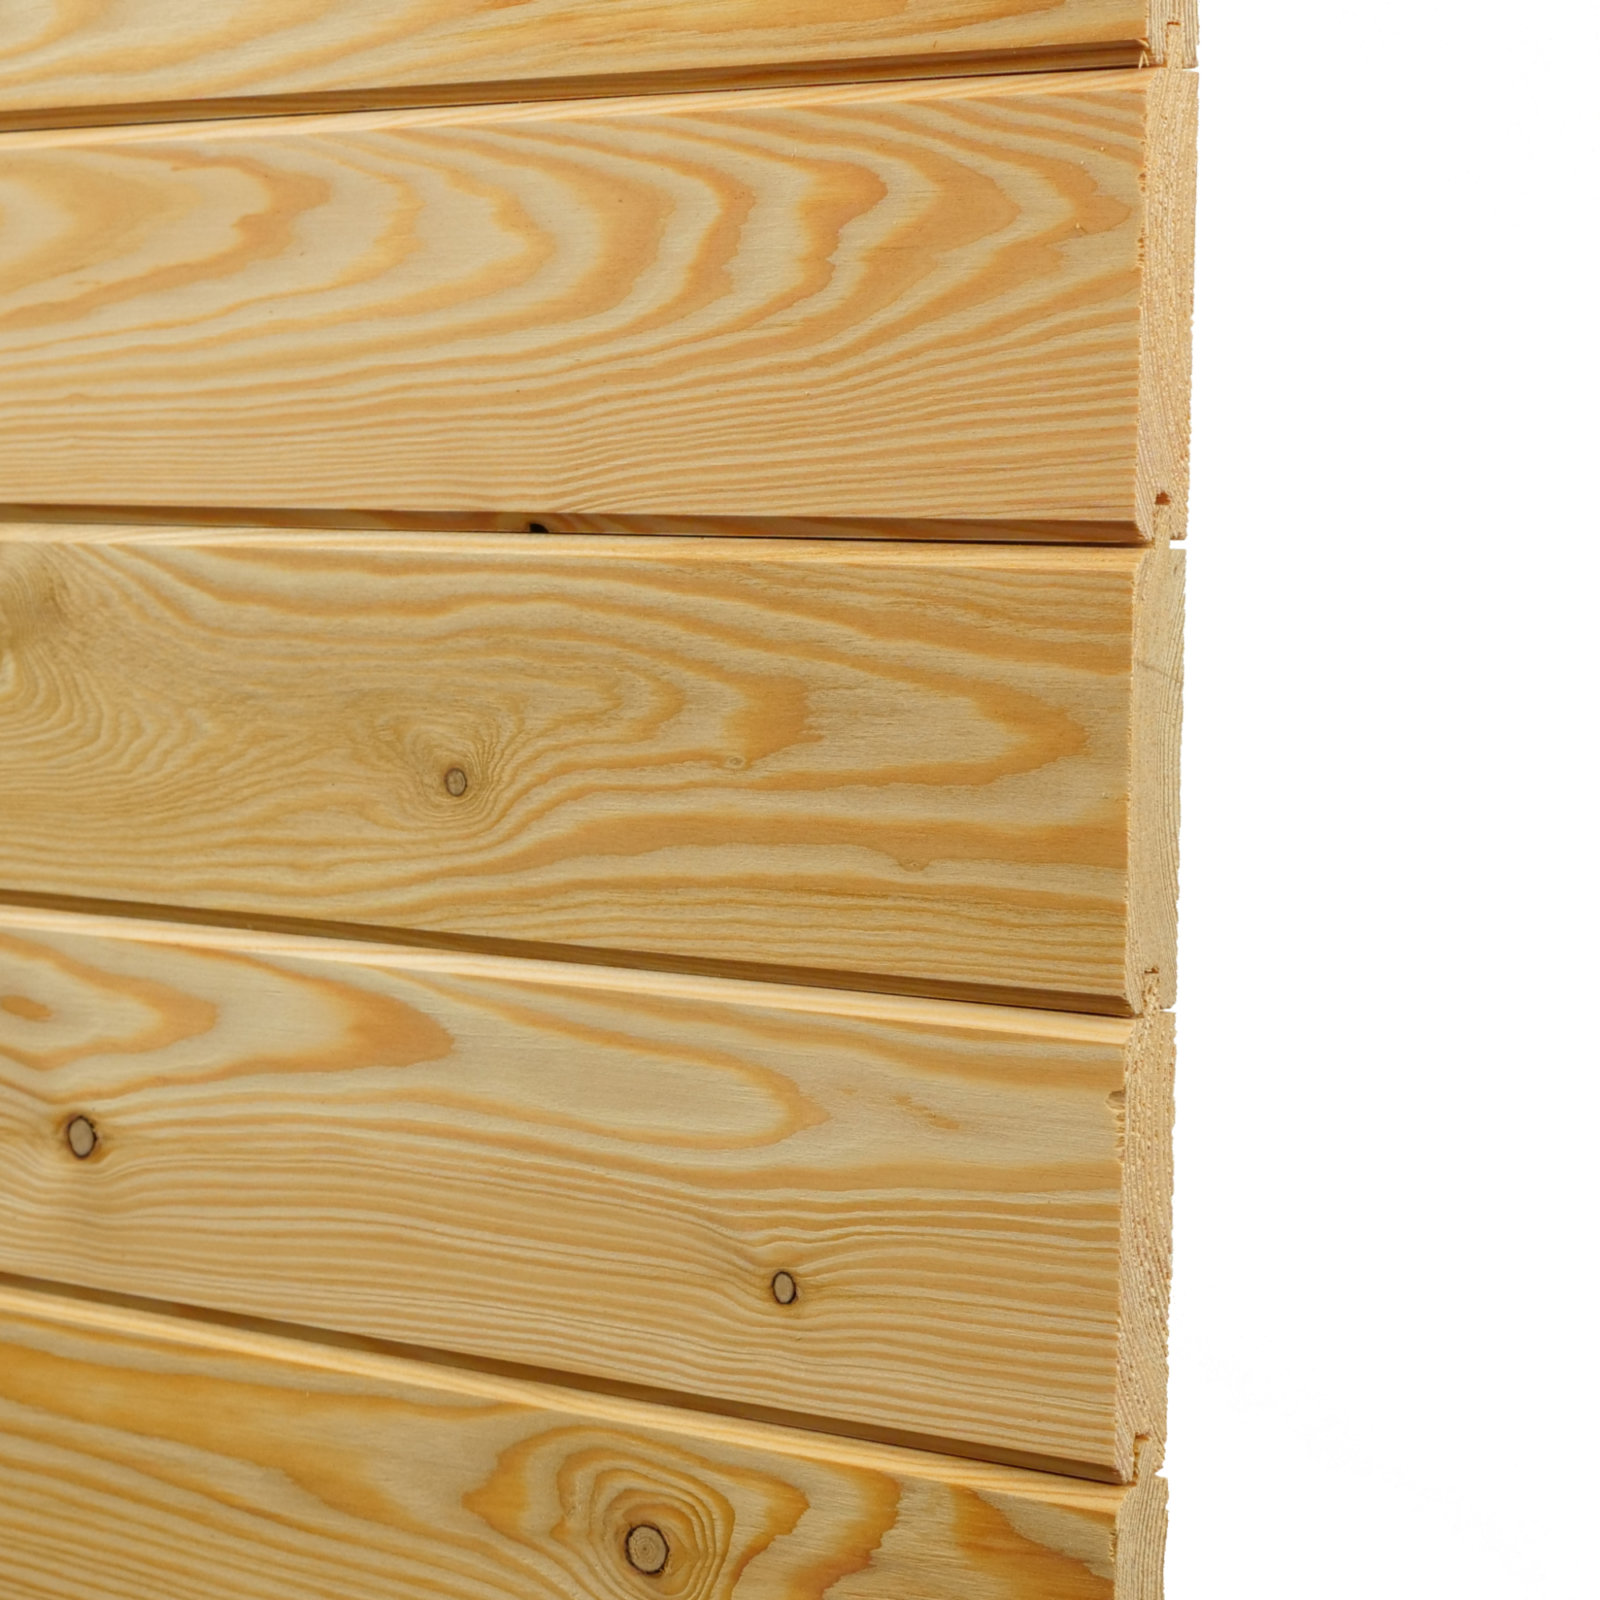 Shiplap Vs Tongue Groove Which Profile Is Best,How To Clean A Kitchen Sponge